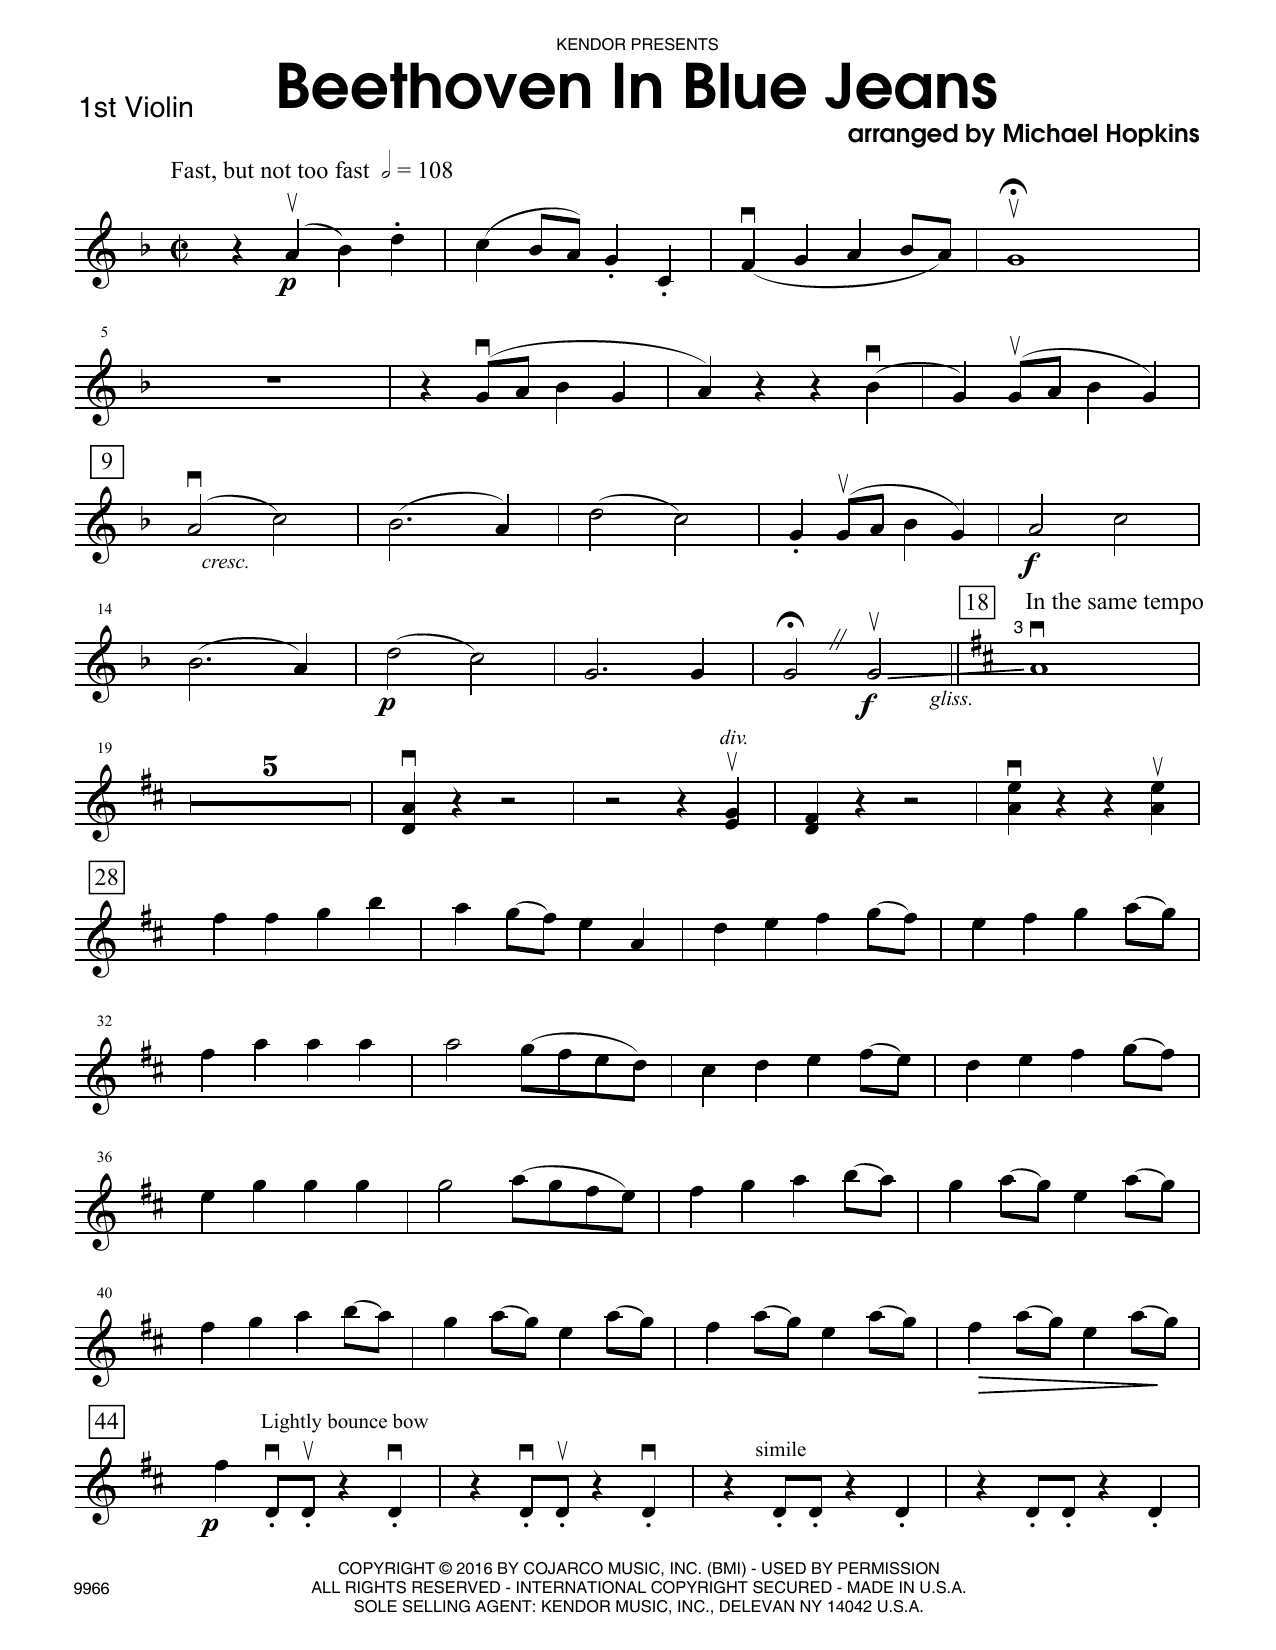 Beethoven In Blue Jeans - 1st Violin Sheet Music